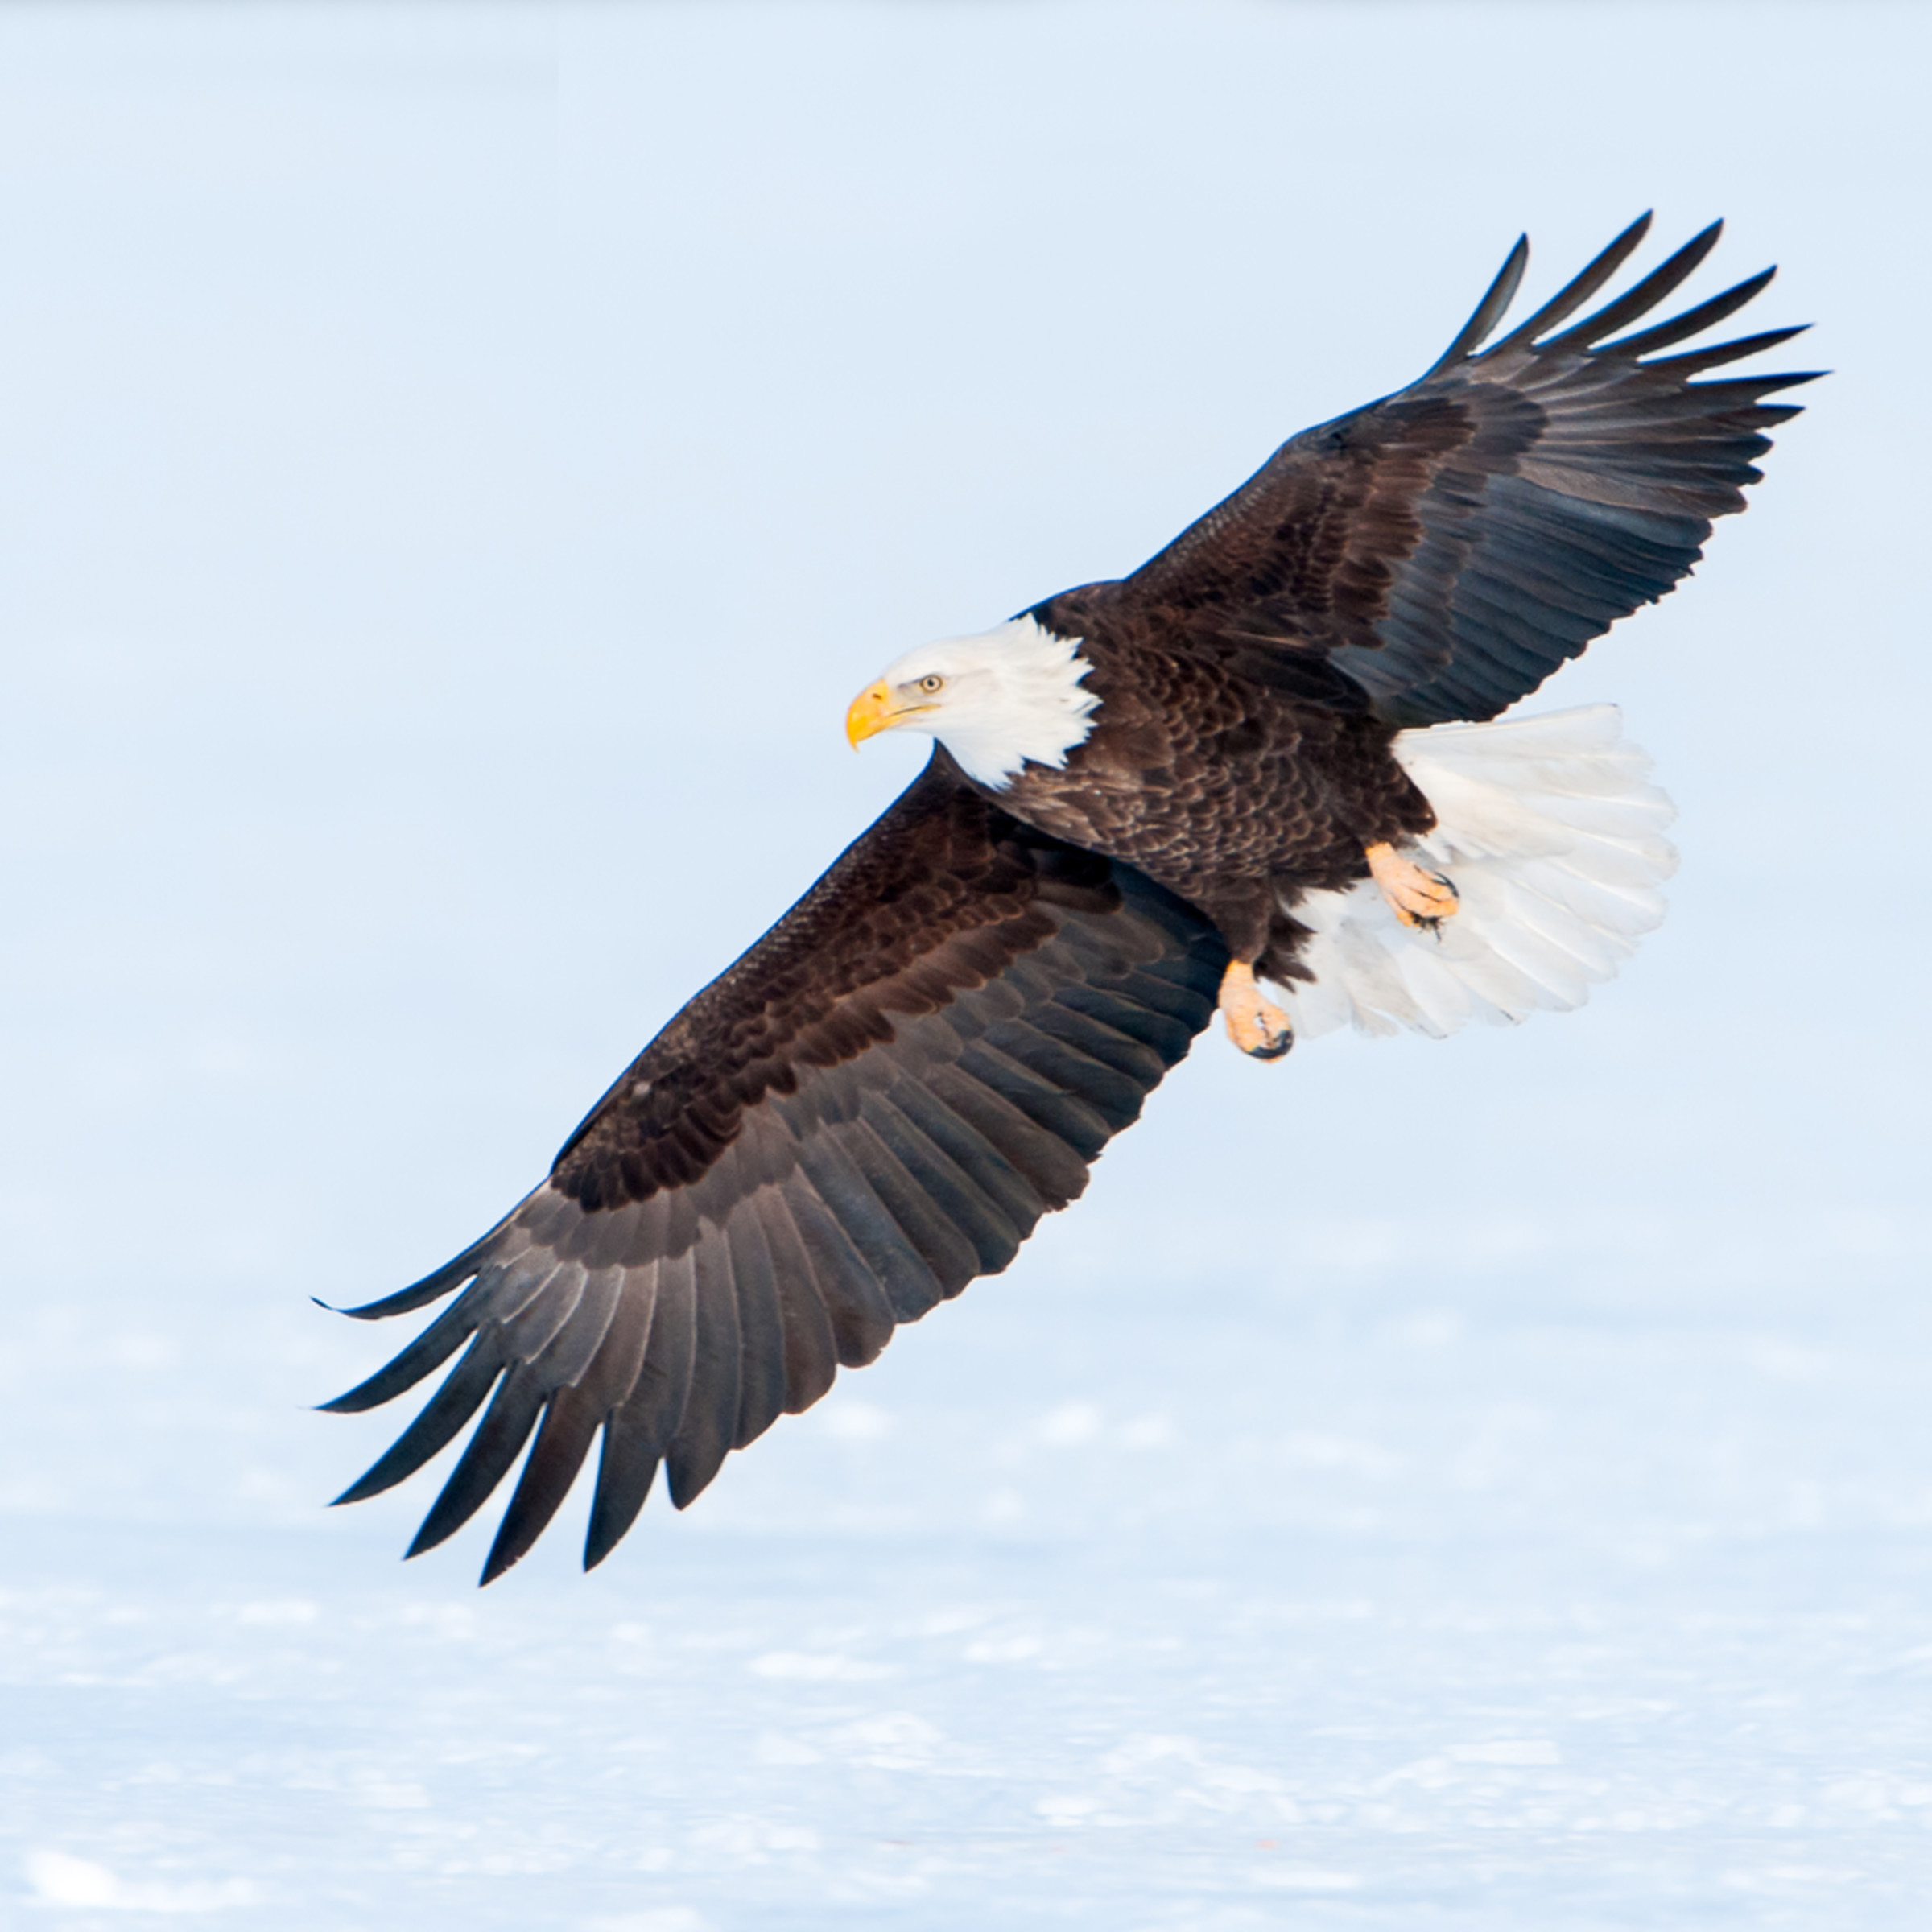 Bald eagle swooping wff5me